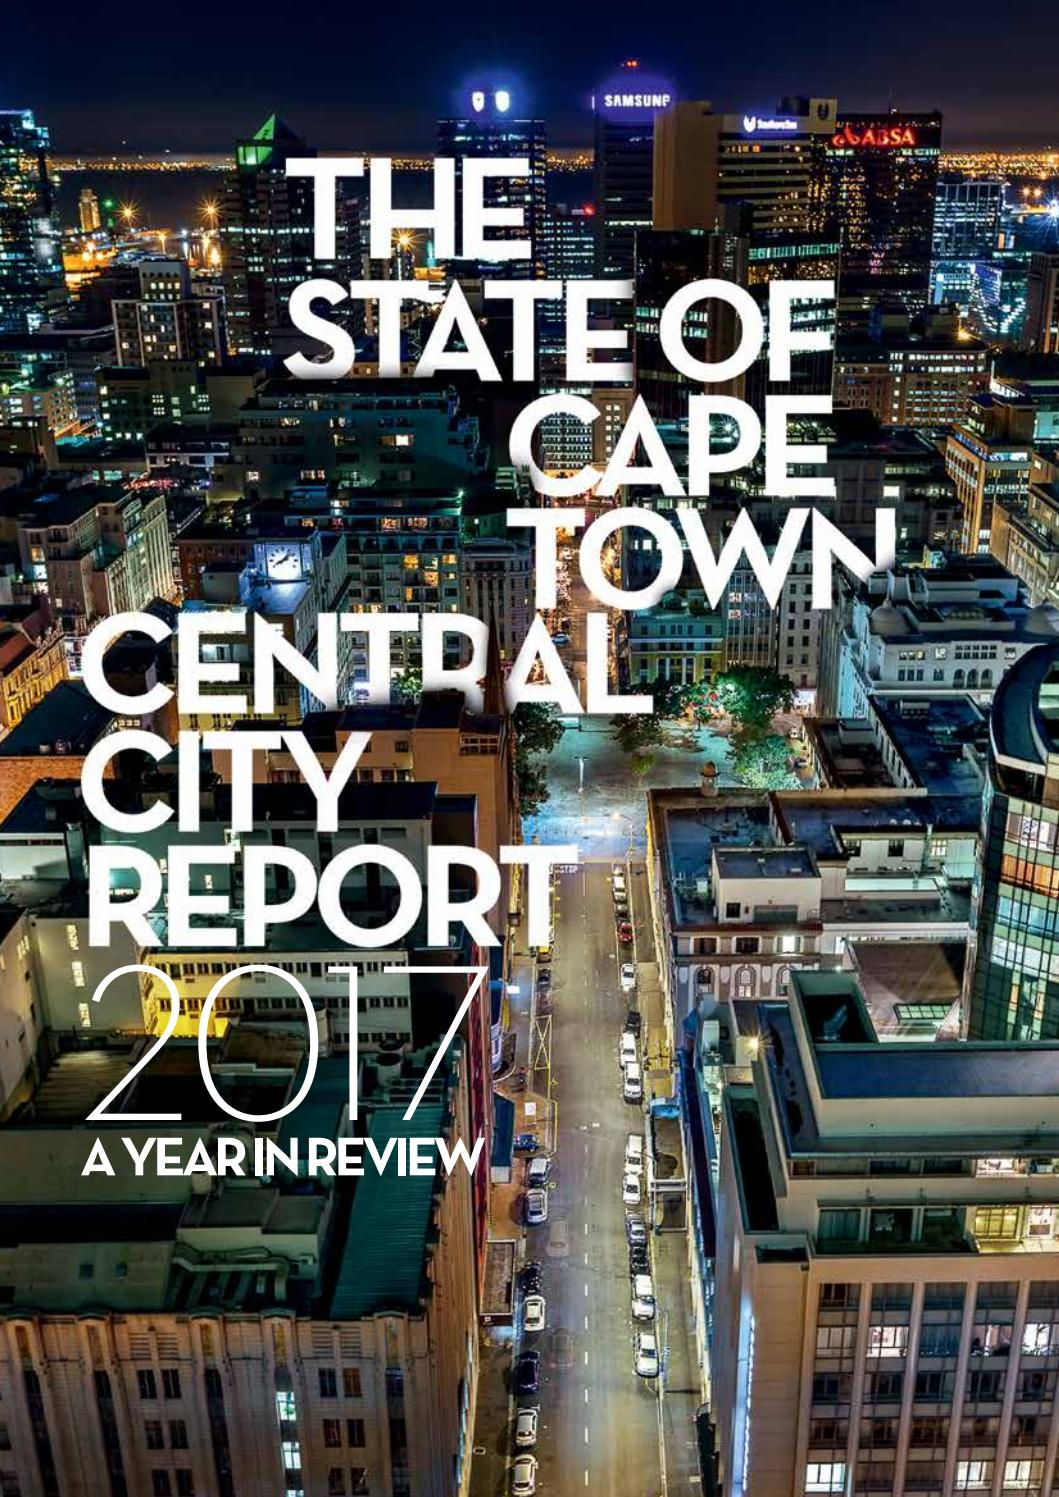 The State of Cape Town Central City Report 2017 by Cape Town